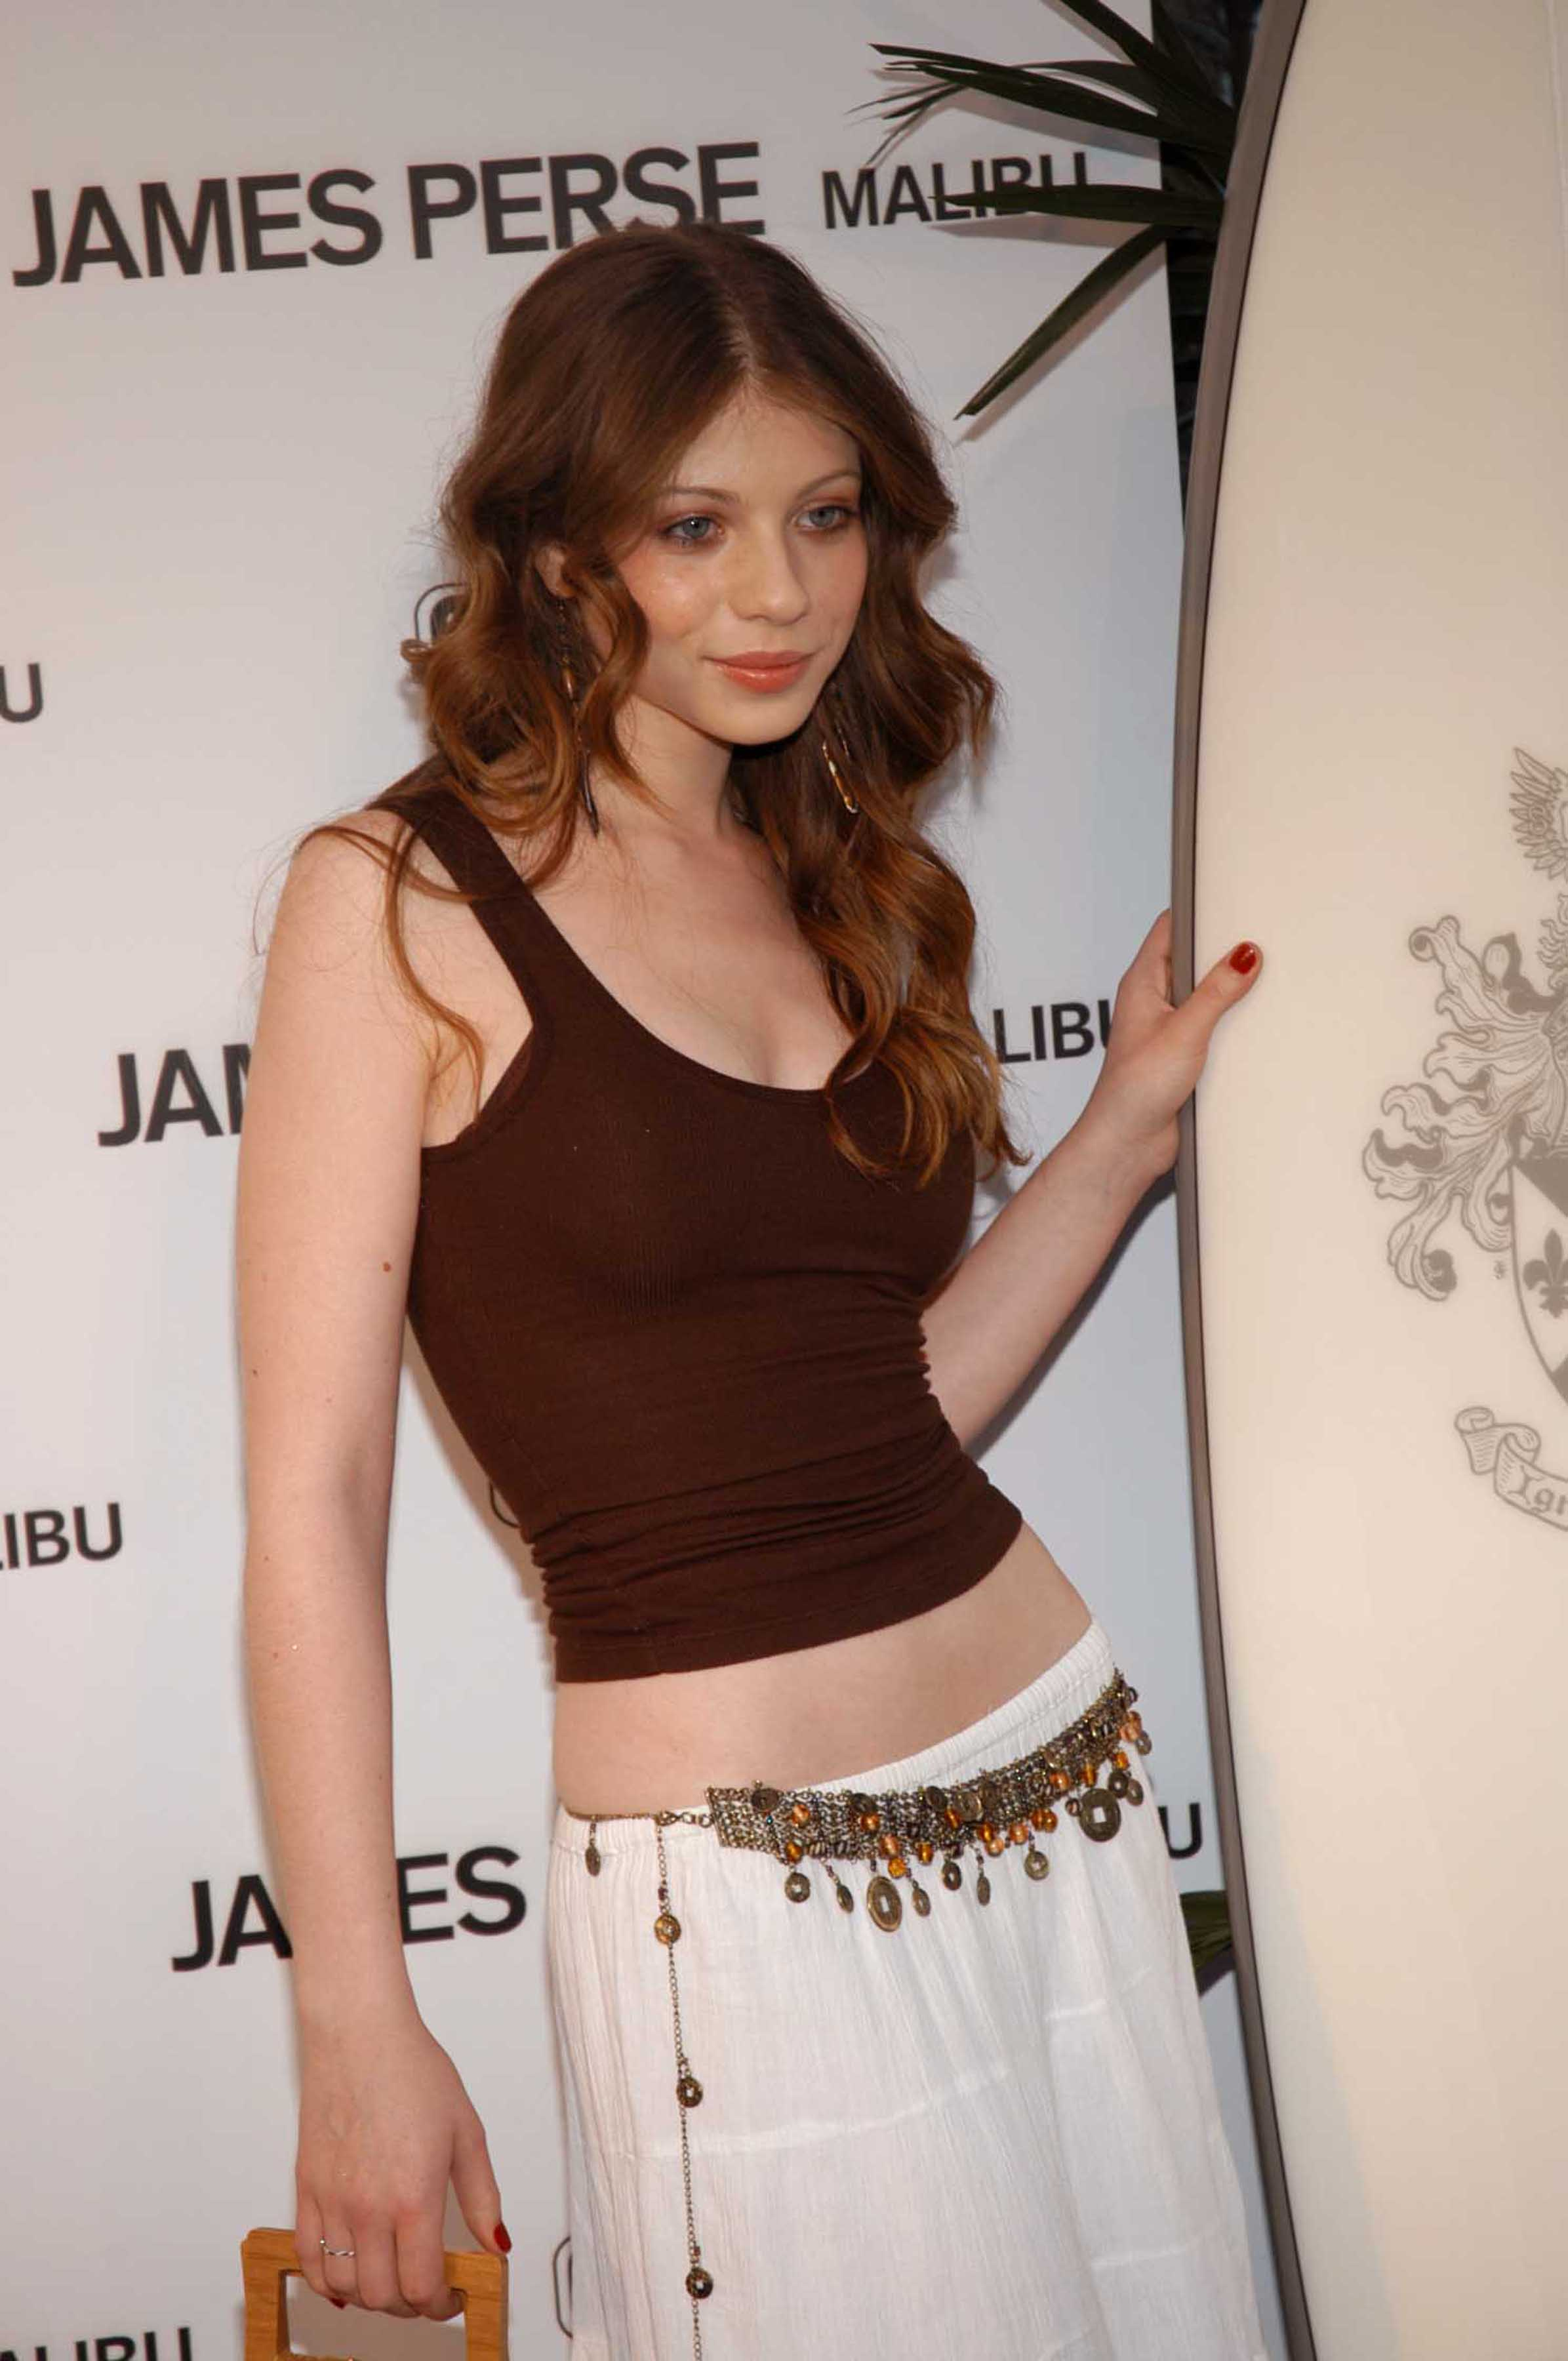 Michelle Trachtenberg, All Grown Up – NothingsNormal.com